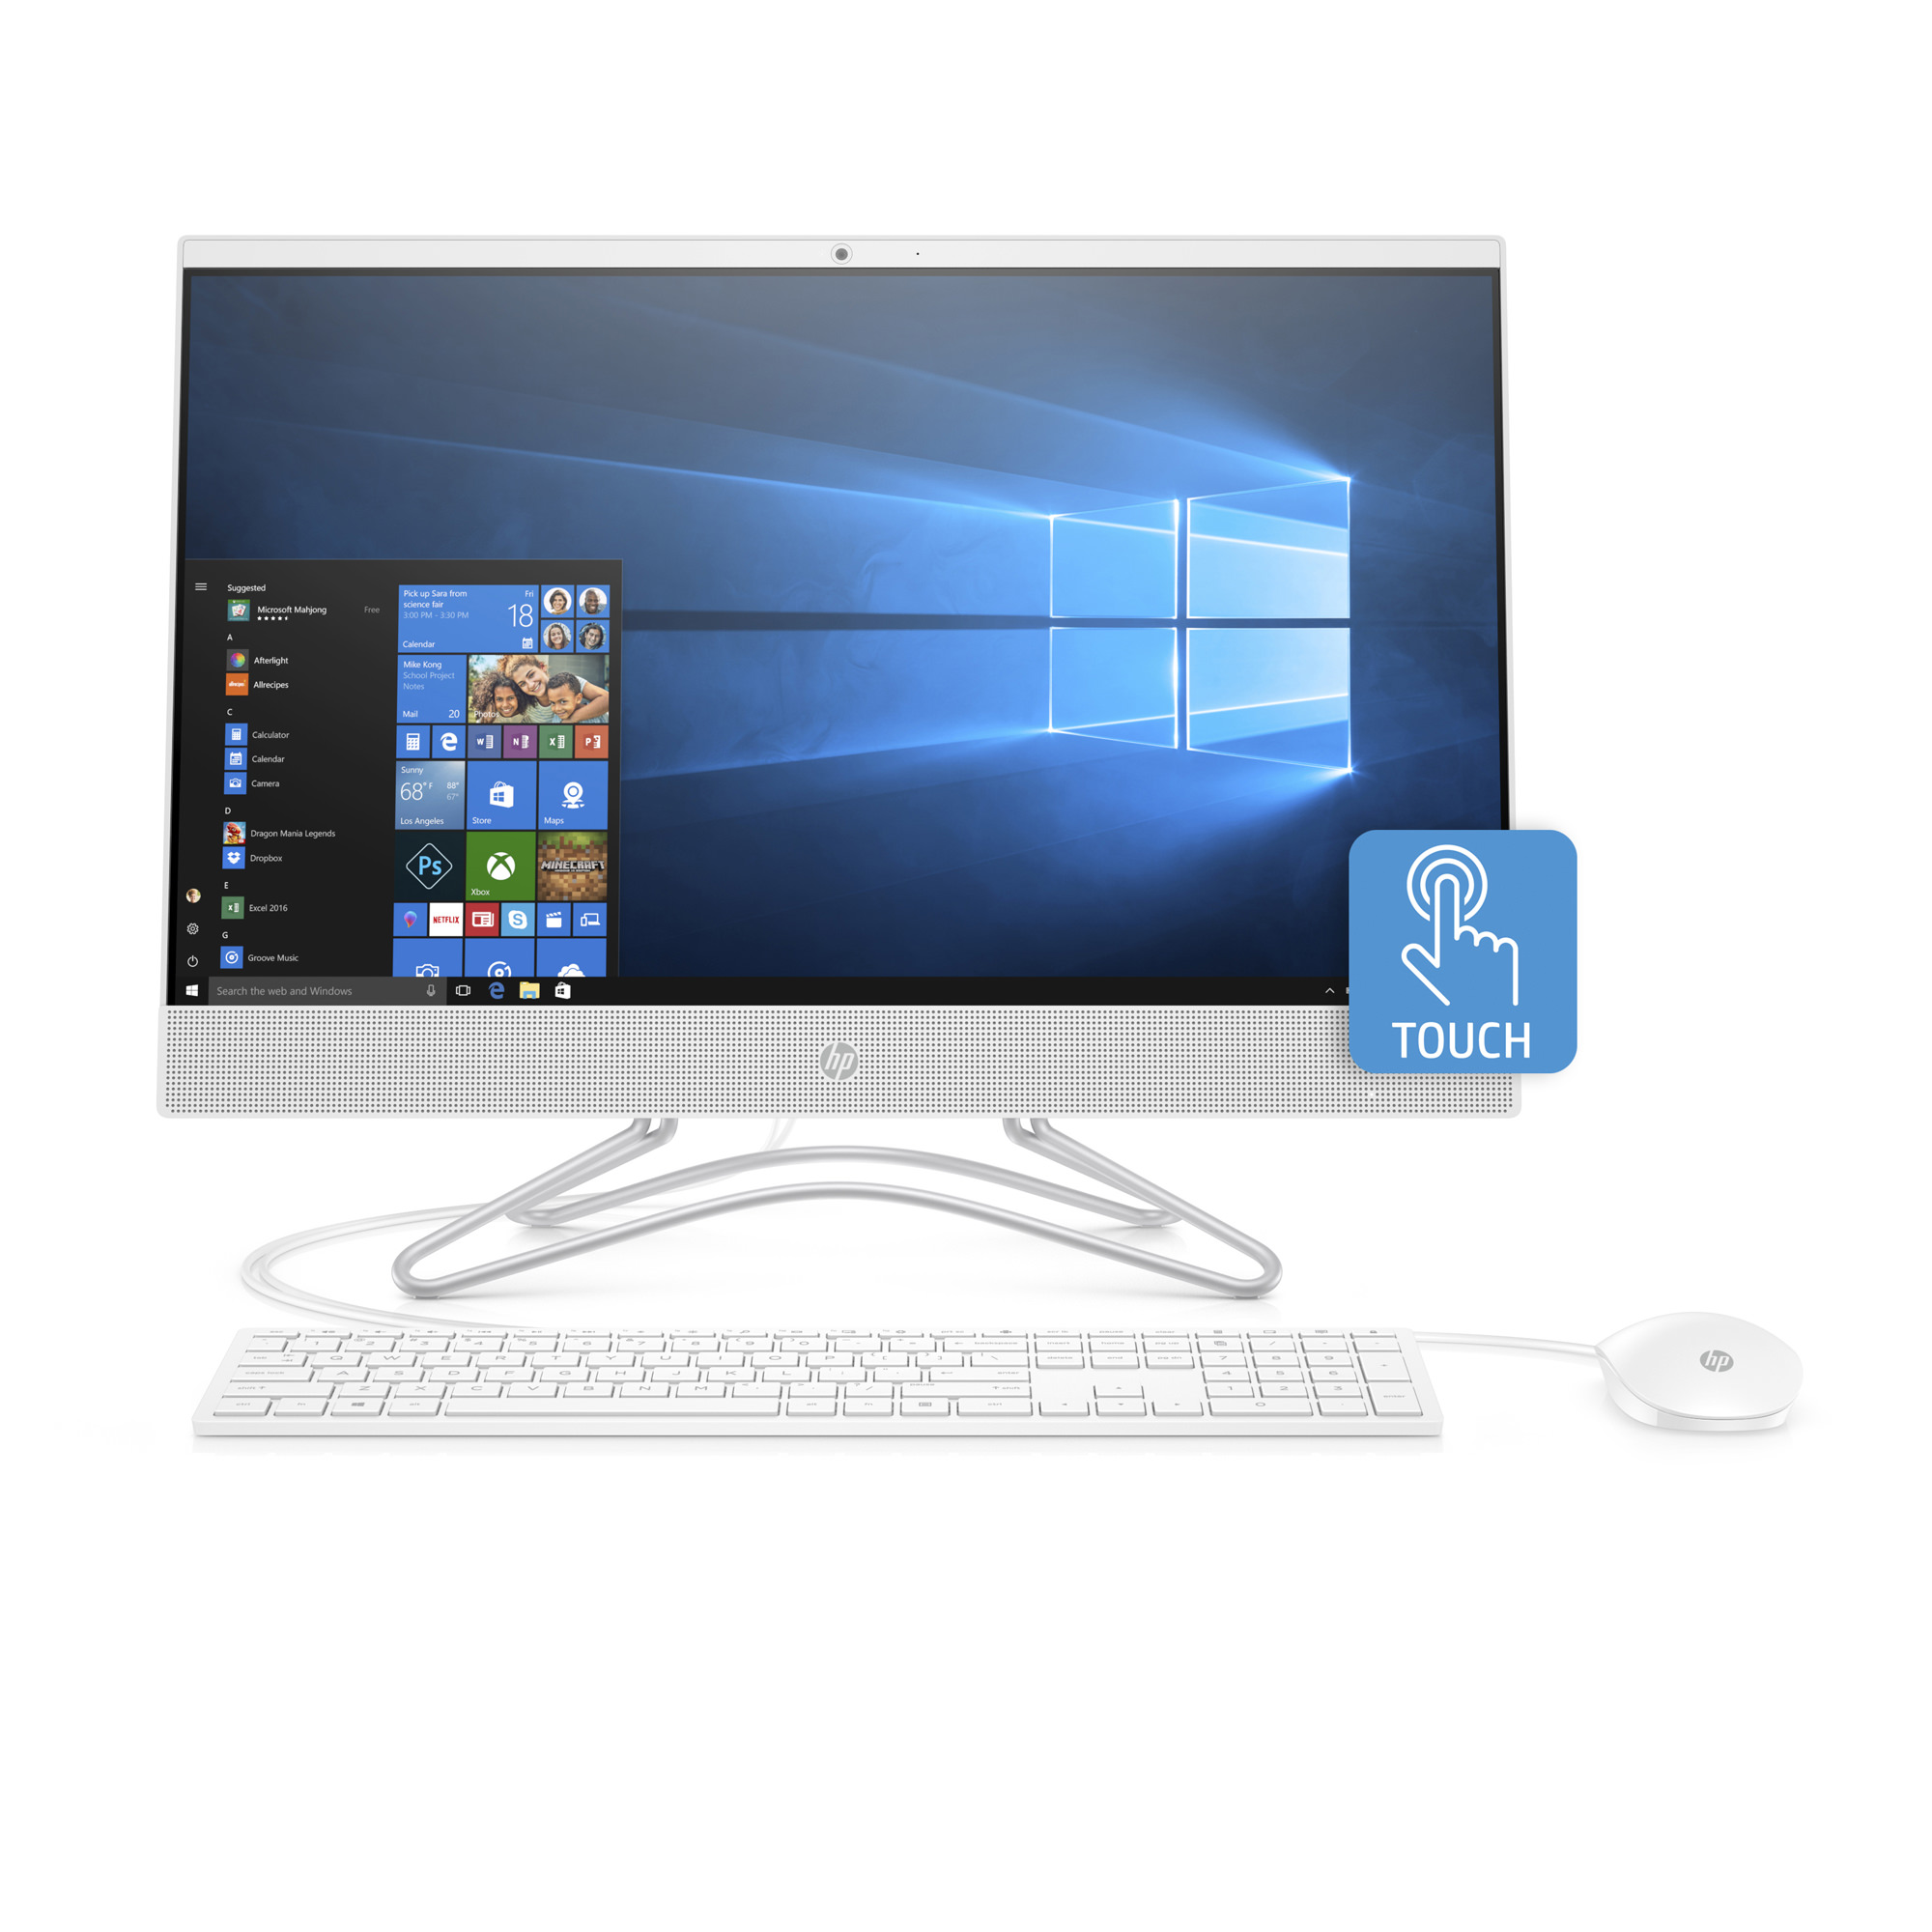 HP 24-F0040 Snow White Touch All in One PC, AMD A9-9425 Processor, 8GB Memory, 1TB Hard Drive, AMD UMA Graphics, Windows 10, DVD, Keyboard and Mouse